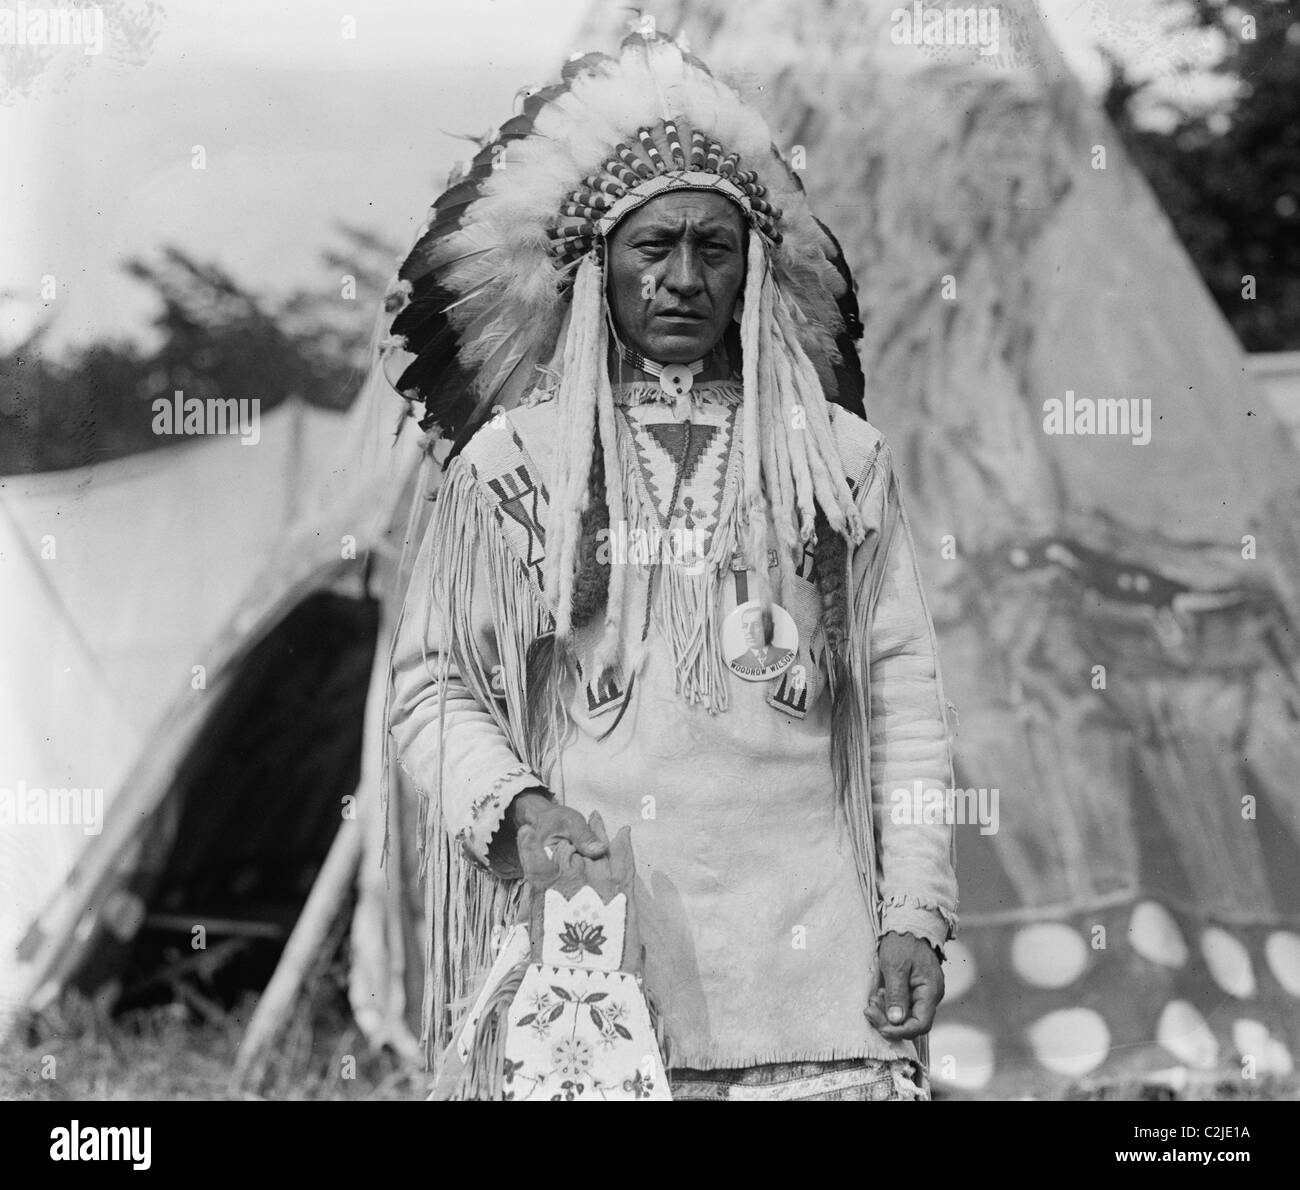 Native American Chief in Traditional Clothing and Feathered Bonnet - Stock Image